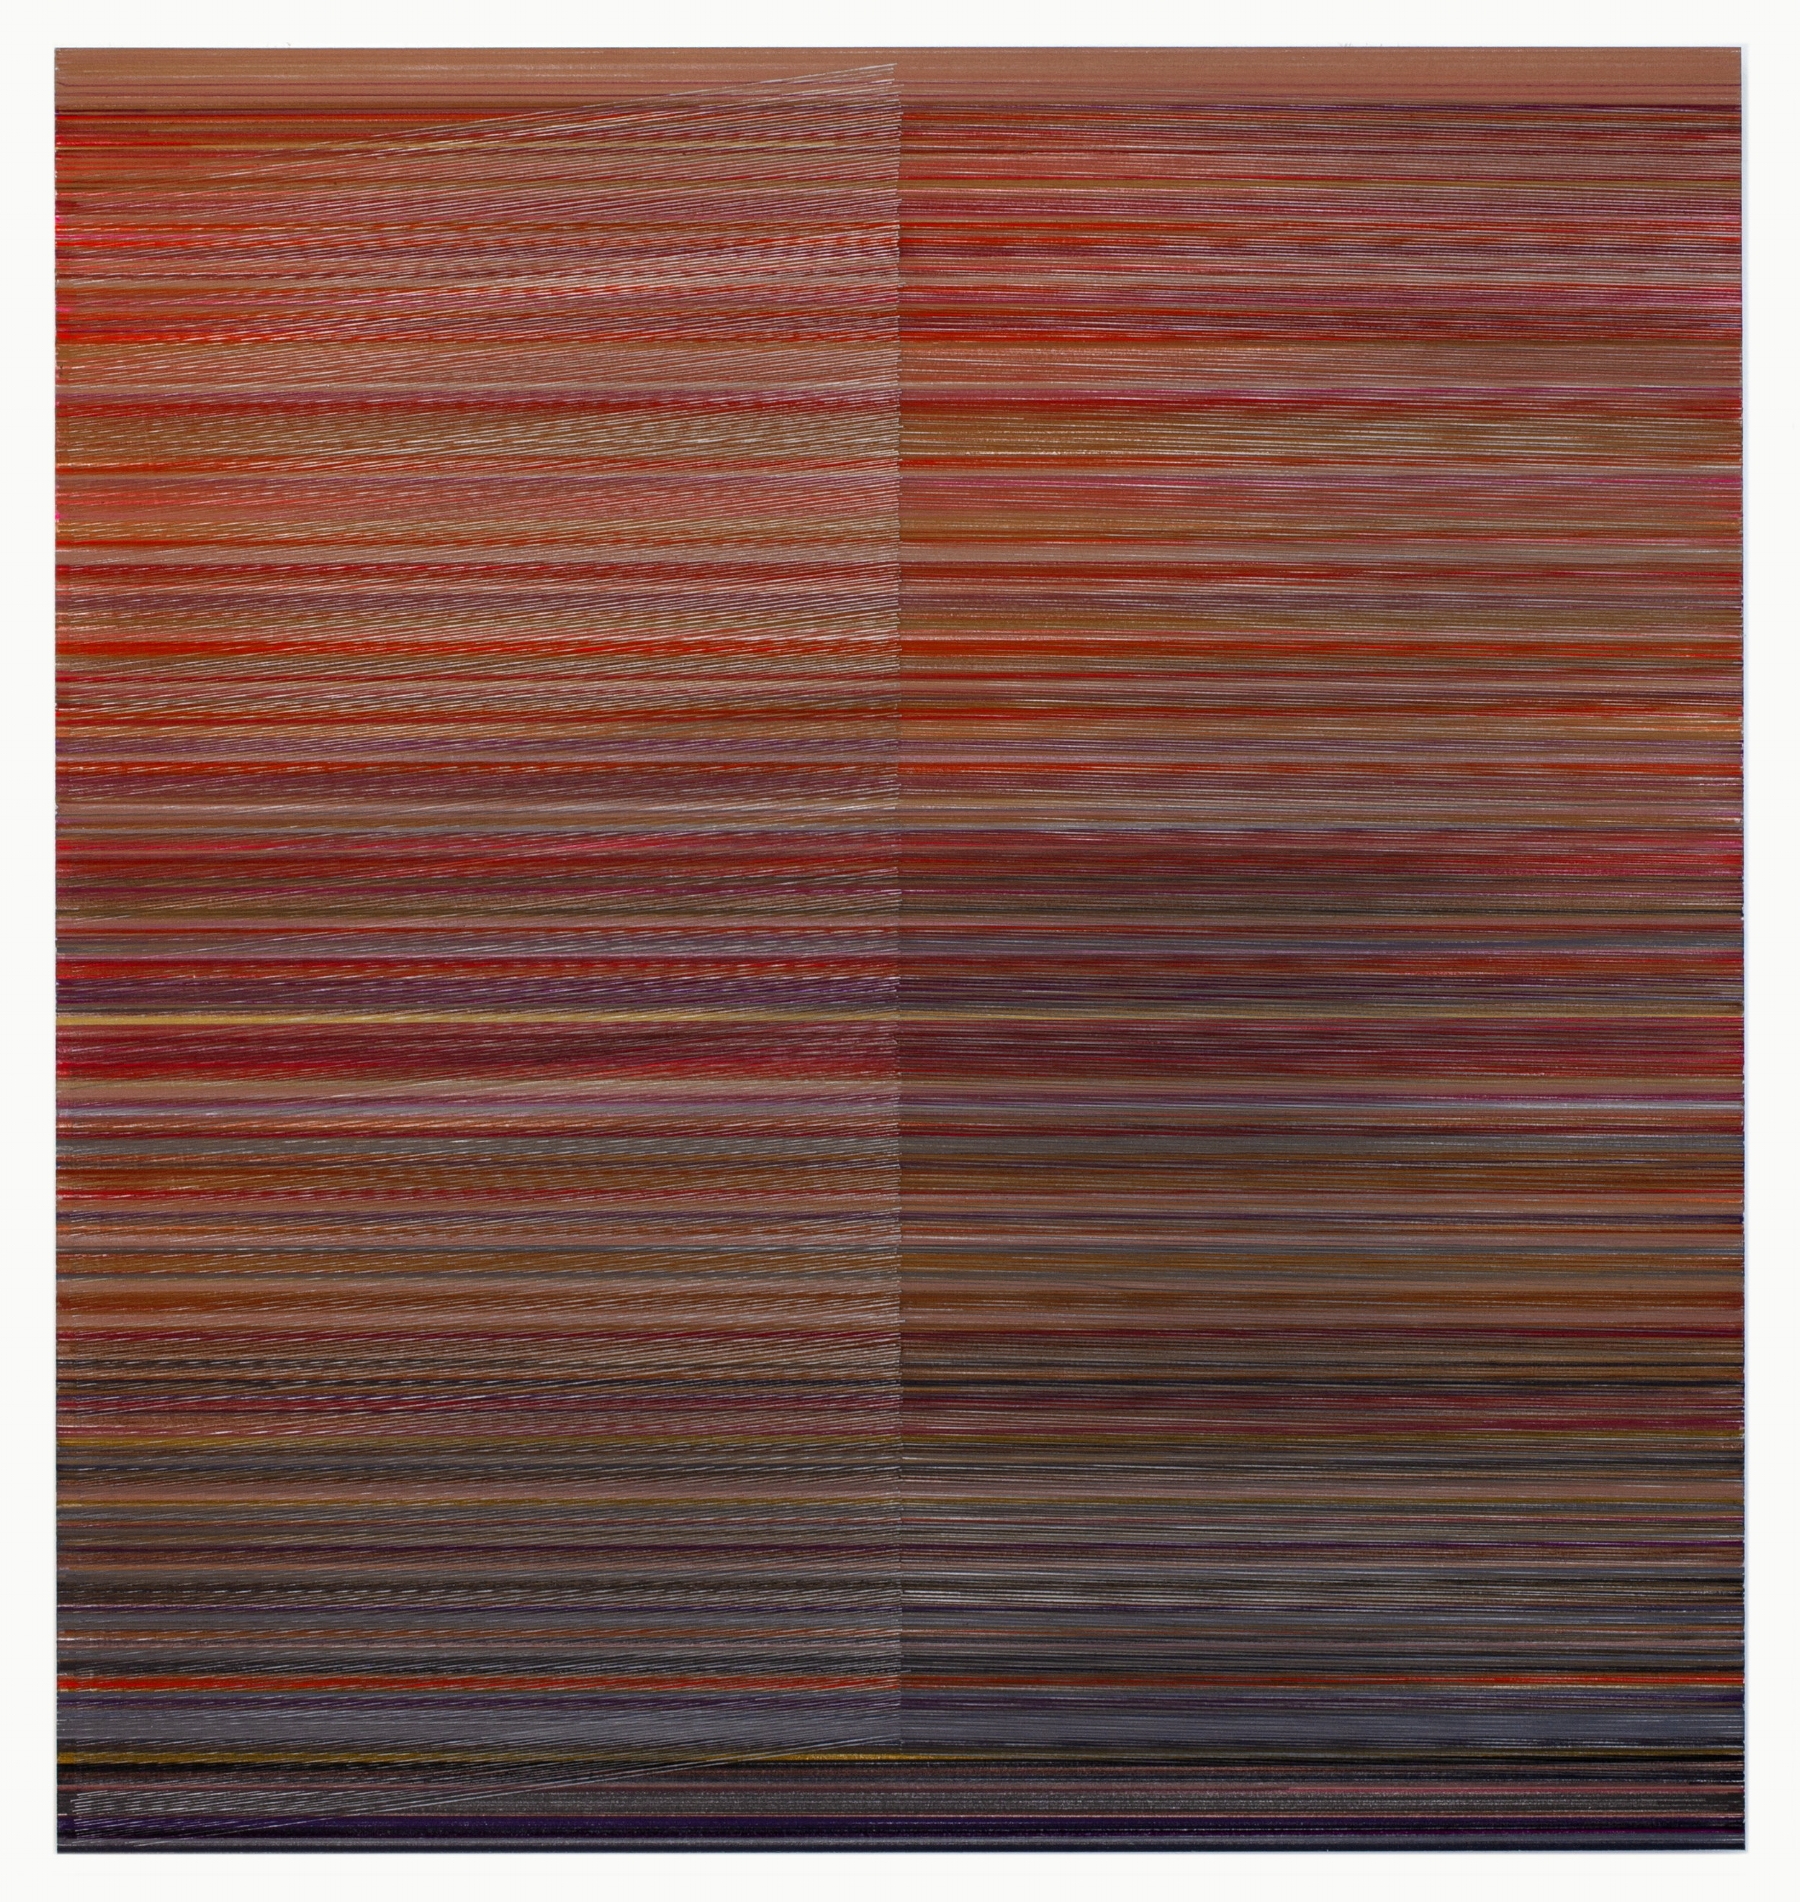 Anne Lindberg,   then the measure 08  , 2018 graphite and colored pencil on mat board, 28 by 30 inches